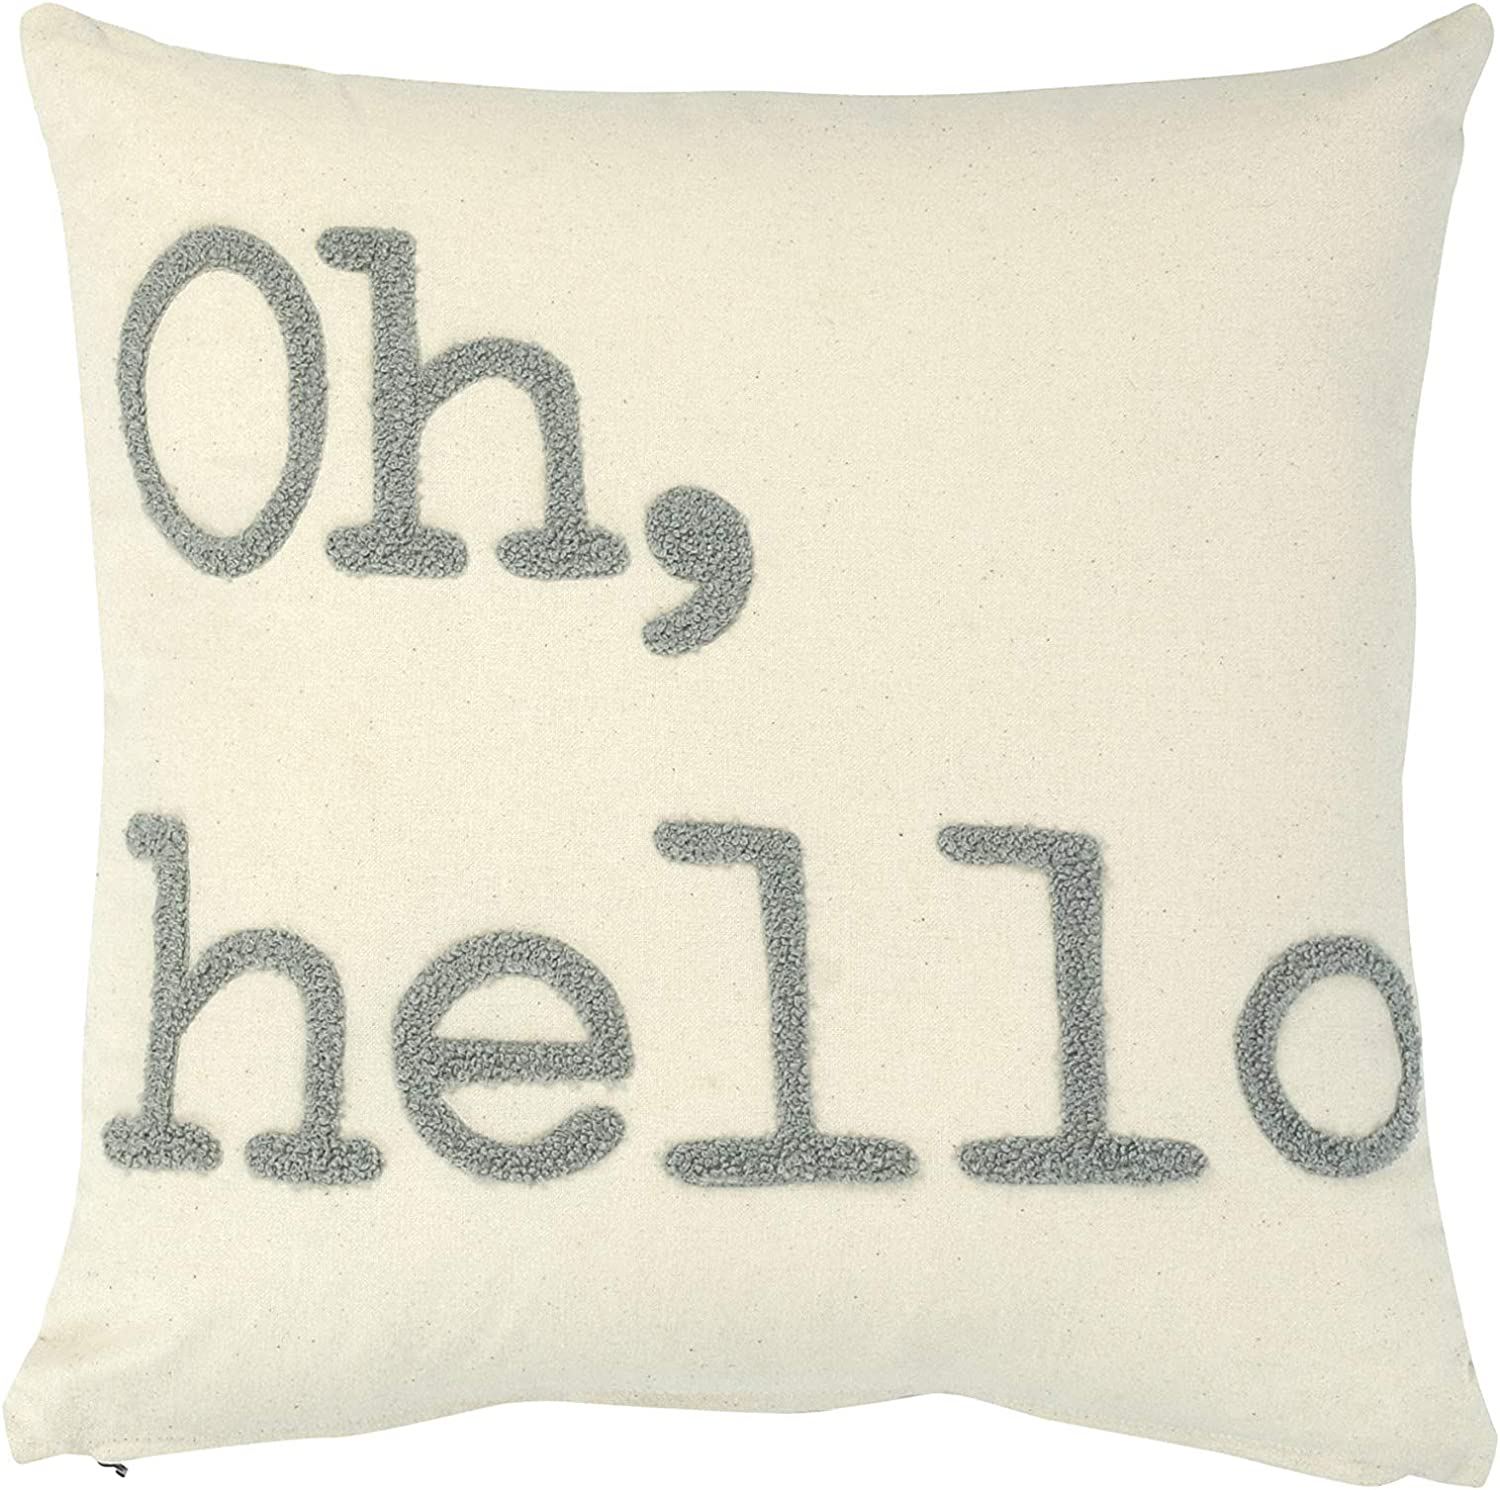 Amazon Com Creative Co Op Oh Hello Embroidered Square Cotton Pillow Grey Home Kitchen